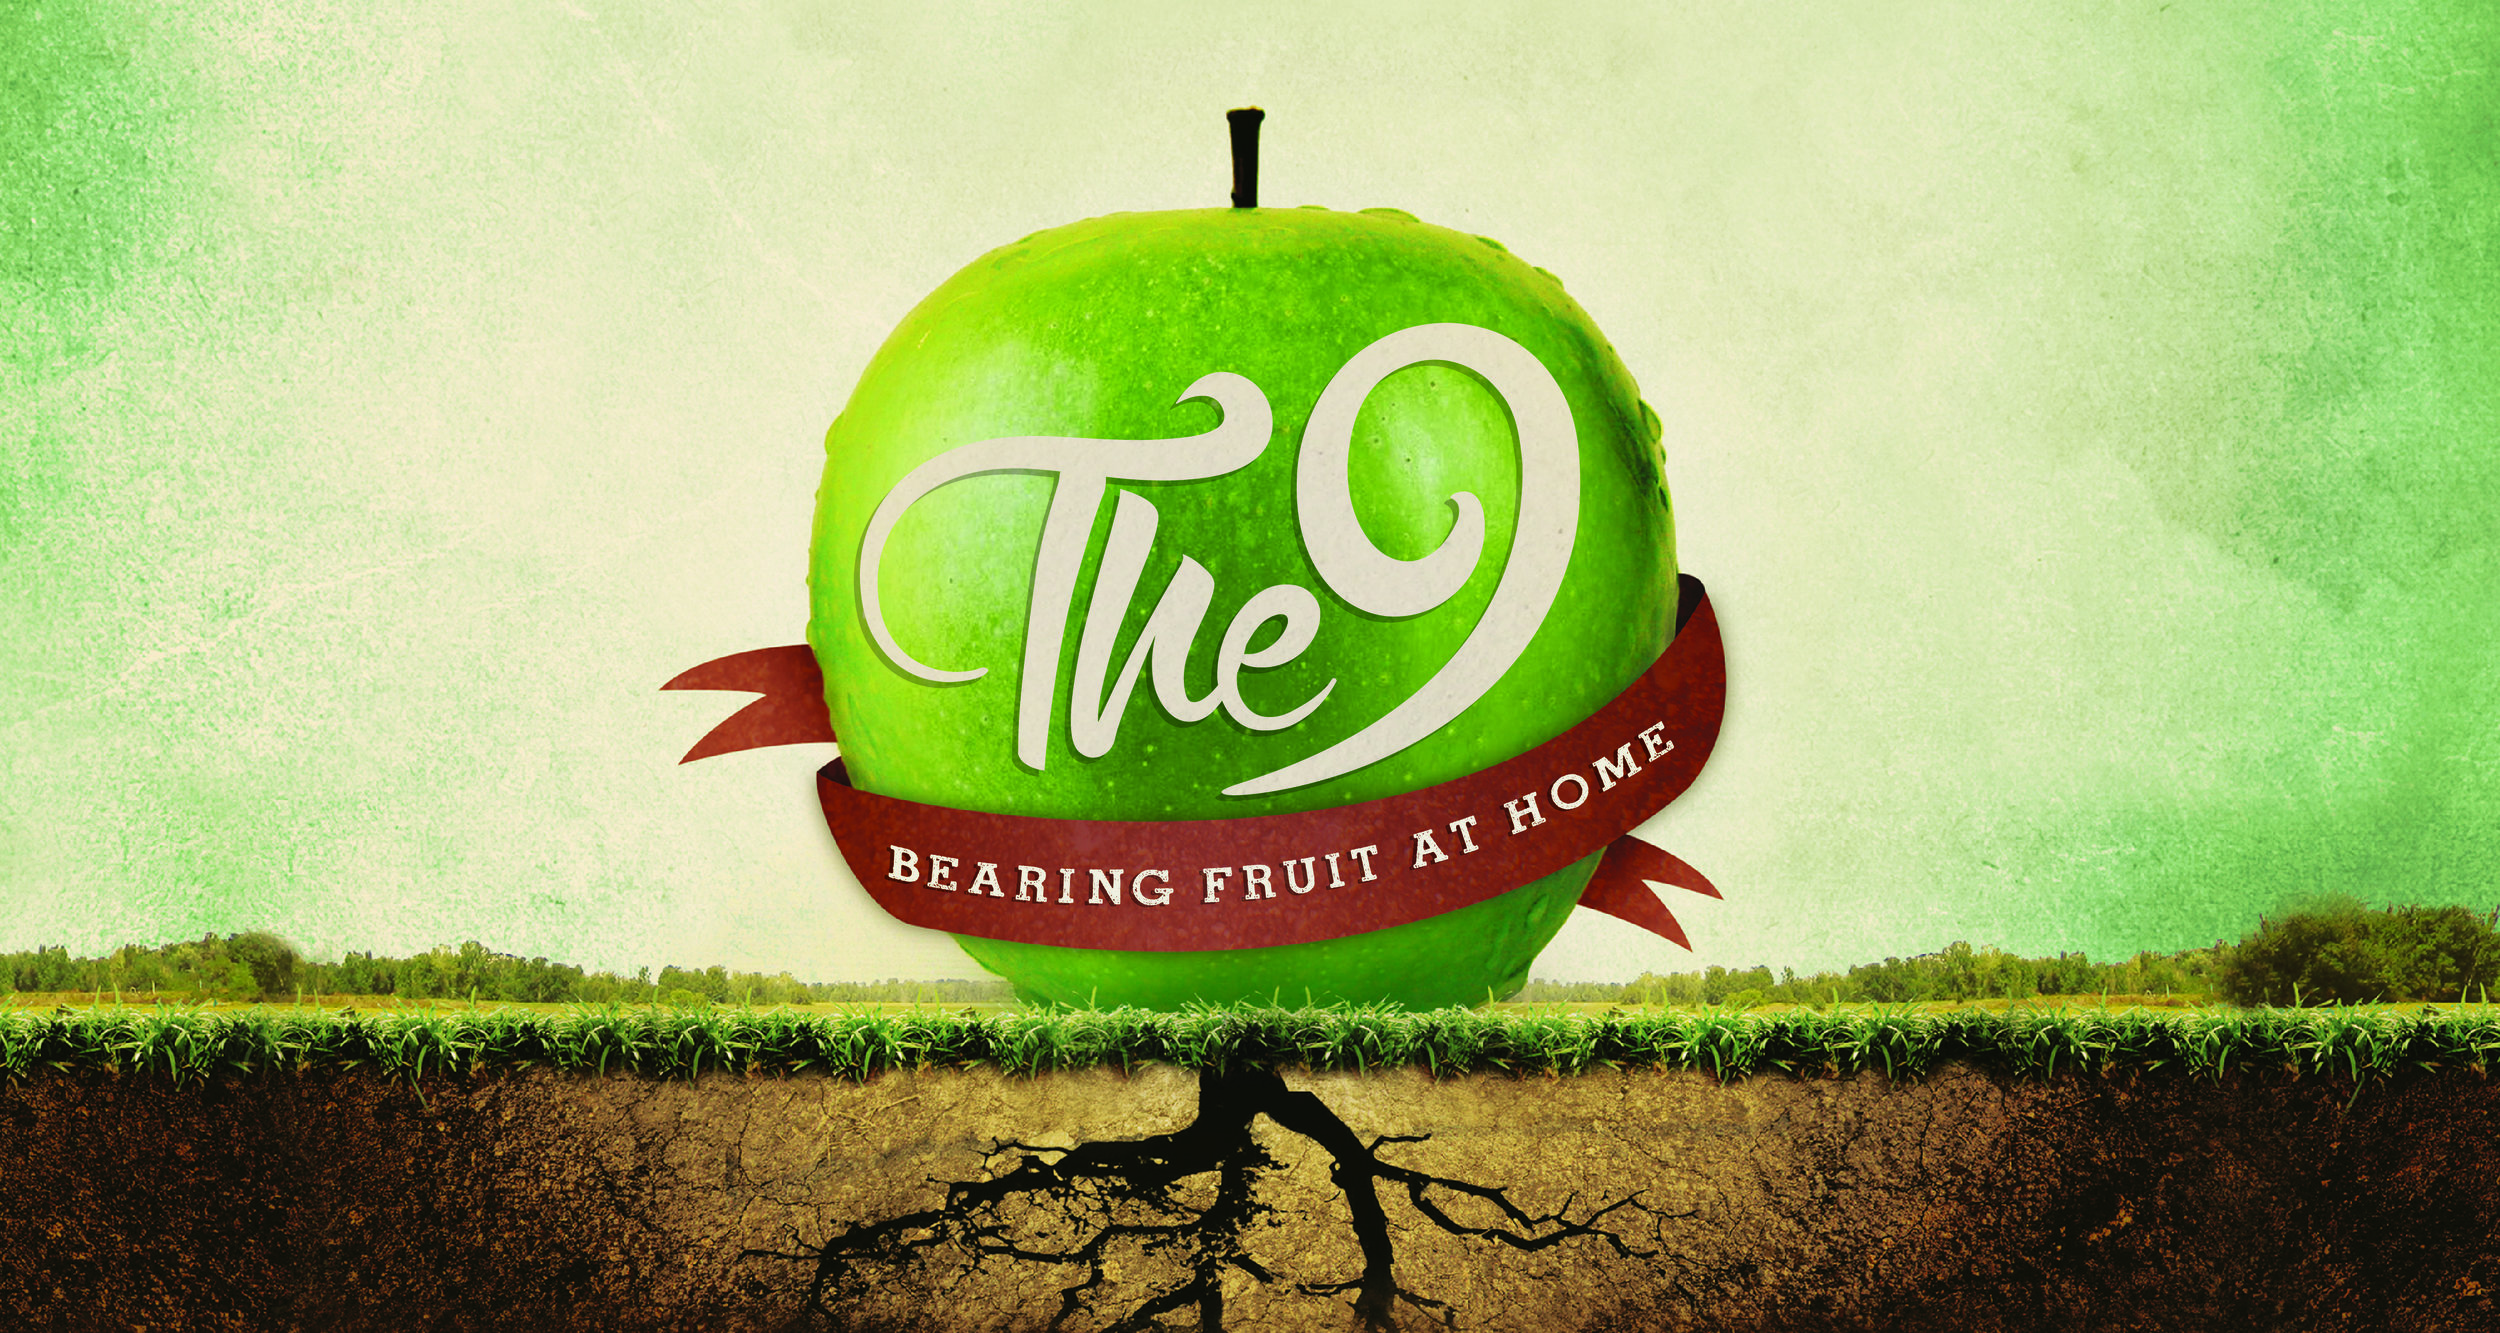 Bearing Fruit in the Fall: 3 Ideas for Exhibiting Gentleness - Gentleness is power under control. It is humility and restraint that derives from a position of true strength in Christ.